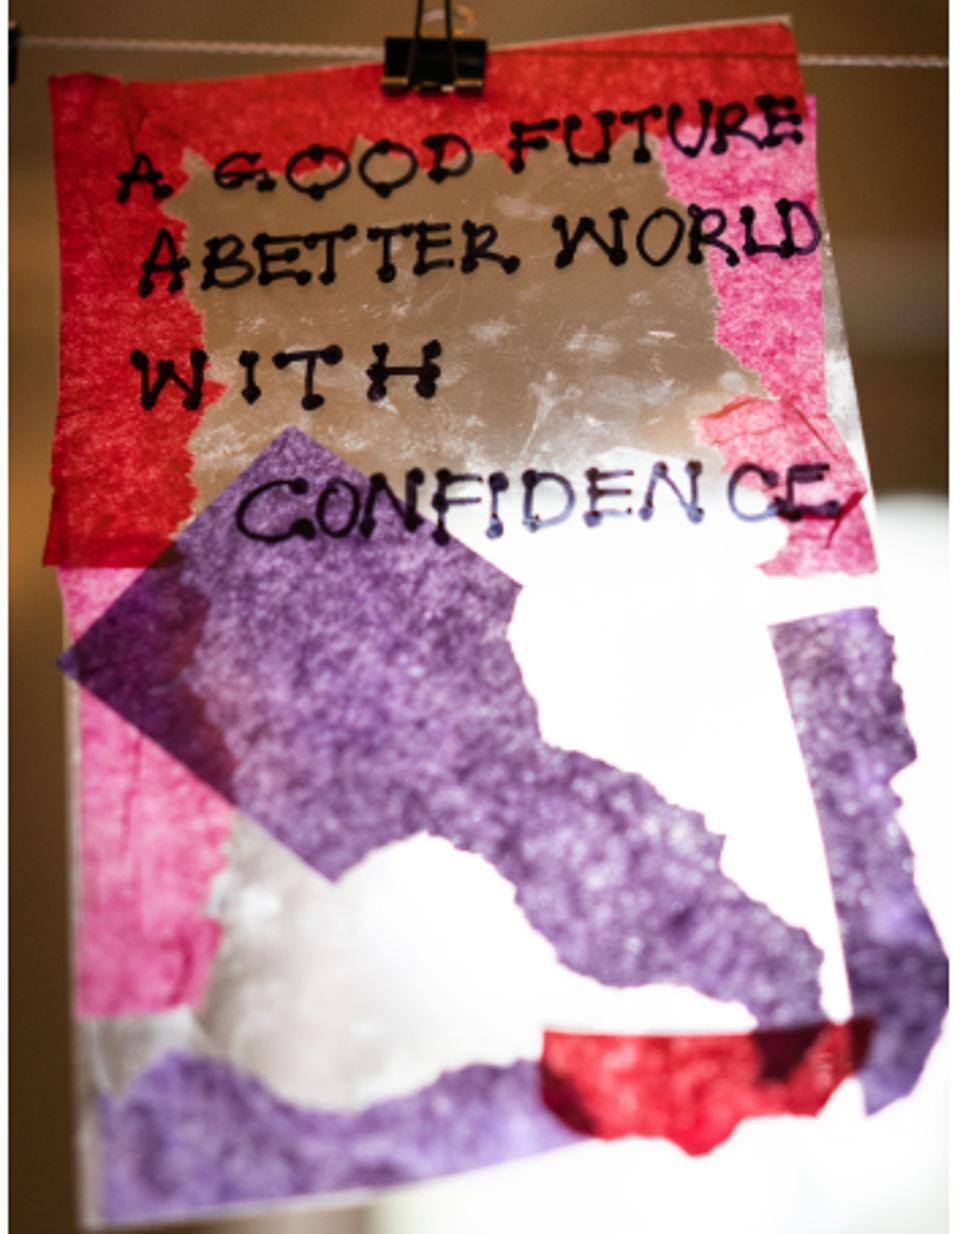 Artwork that reads, ″A Good Future, A Better World, With Confidence.″